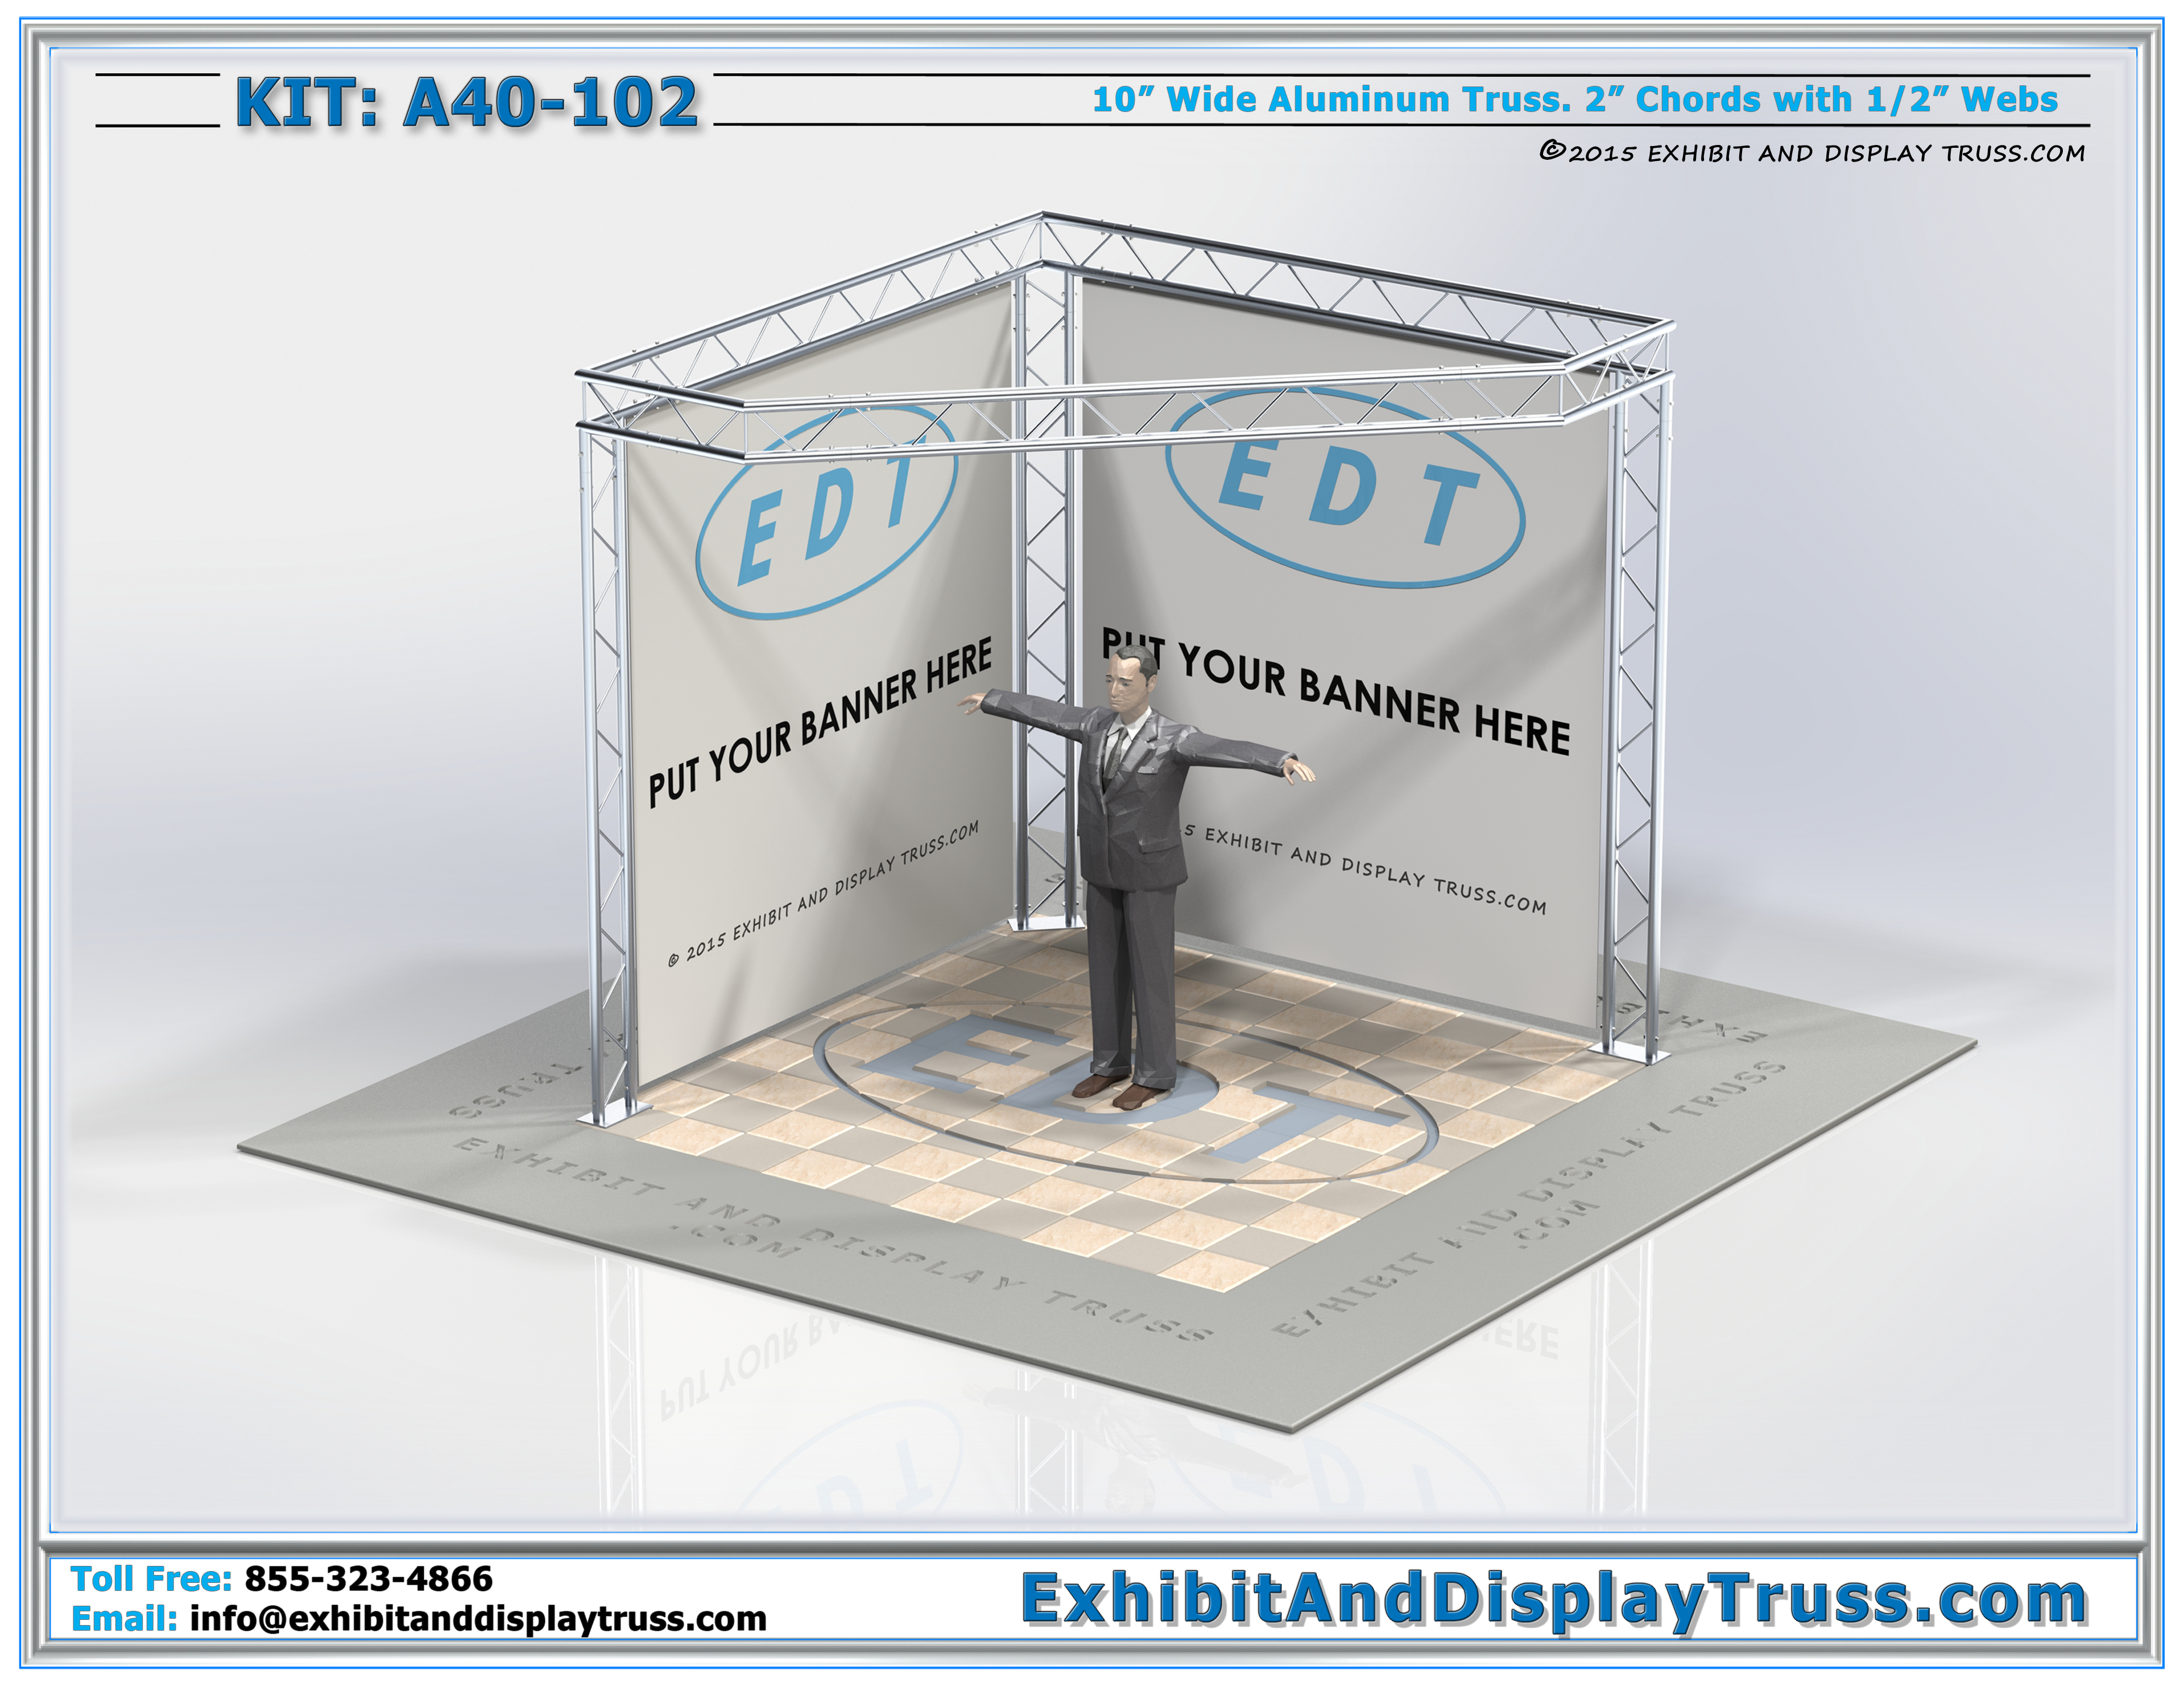 Trade Show Booth Dimensions : Exhibit display kits flat packing a